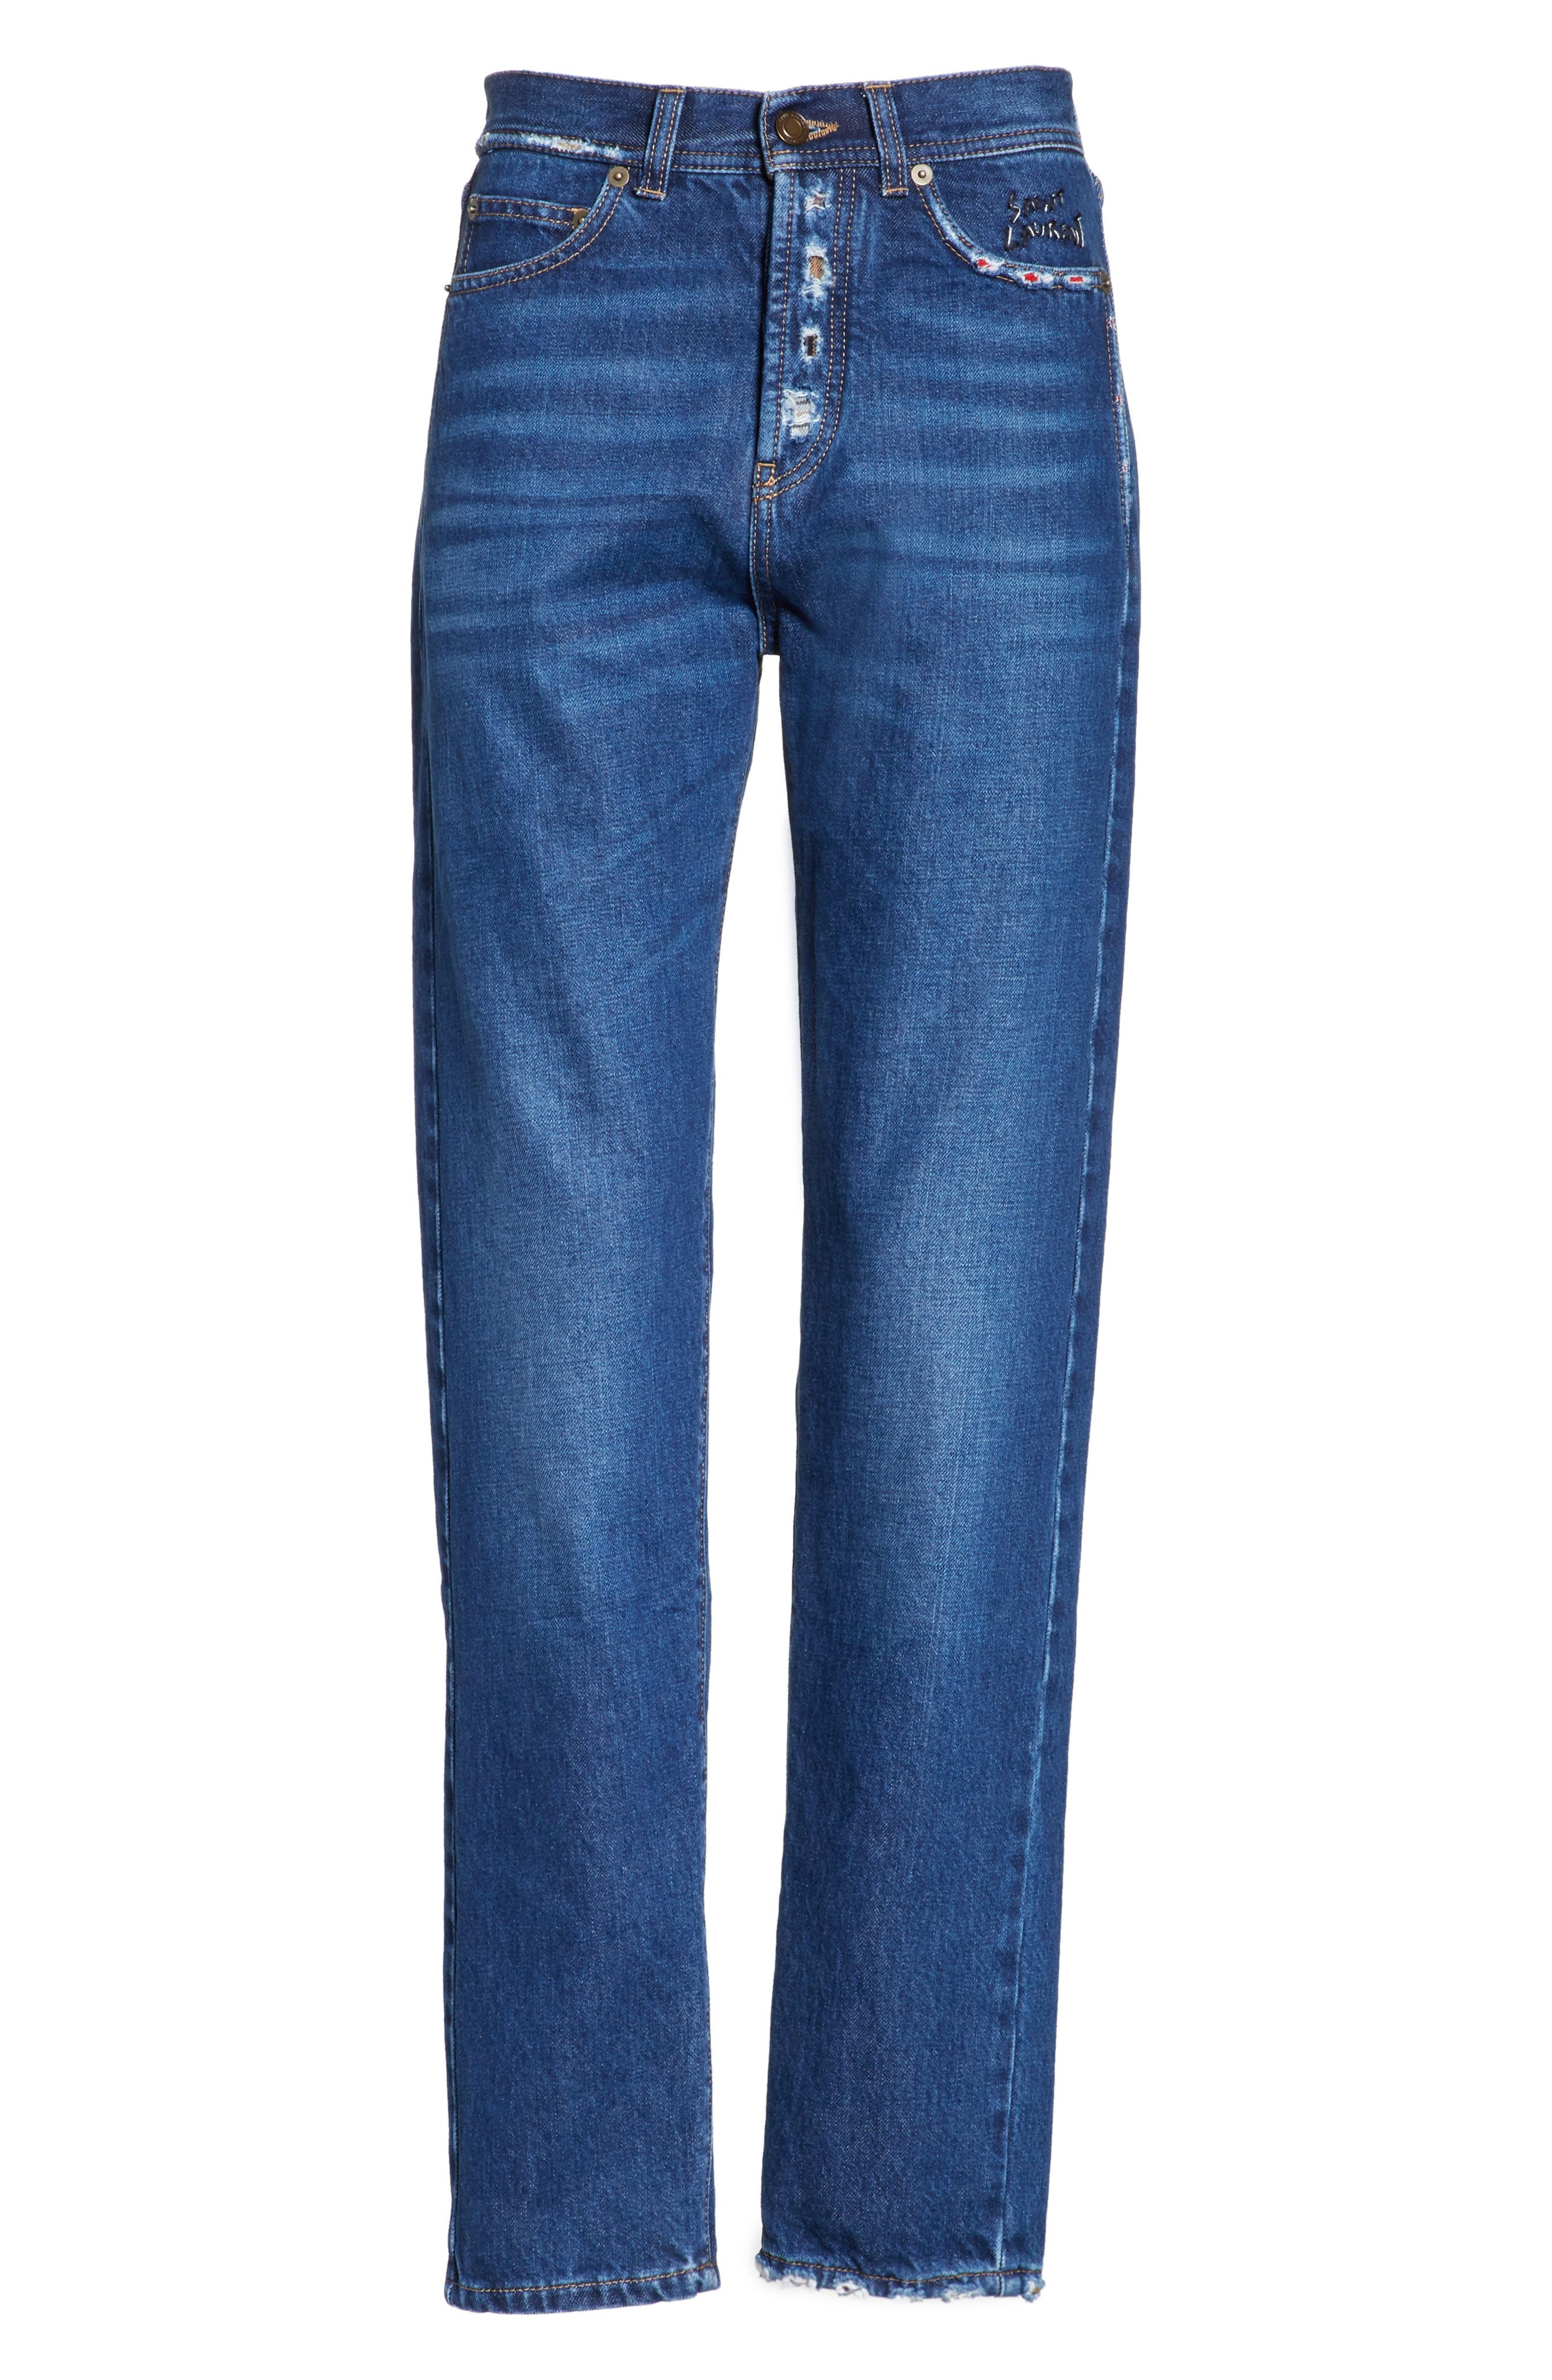 Embroidered Jeans,                             Alternate thumbnail 6, color,                             411